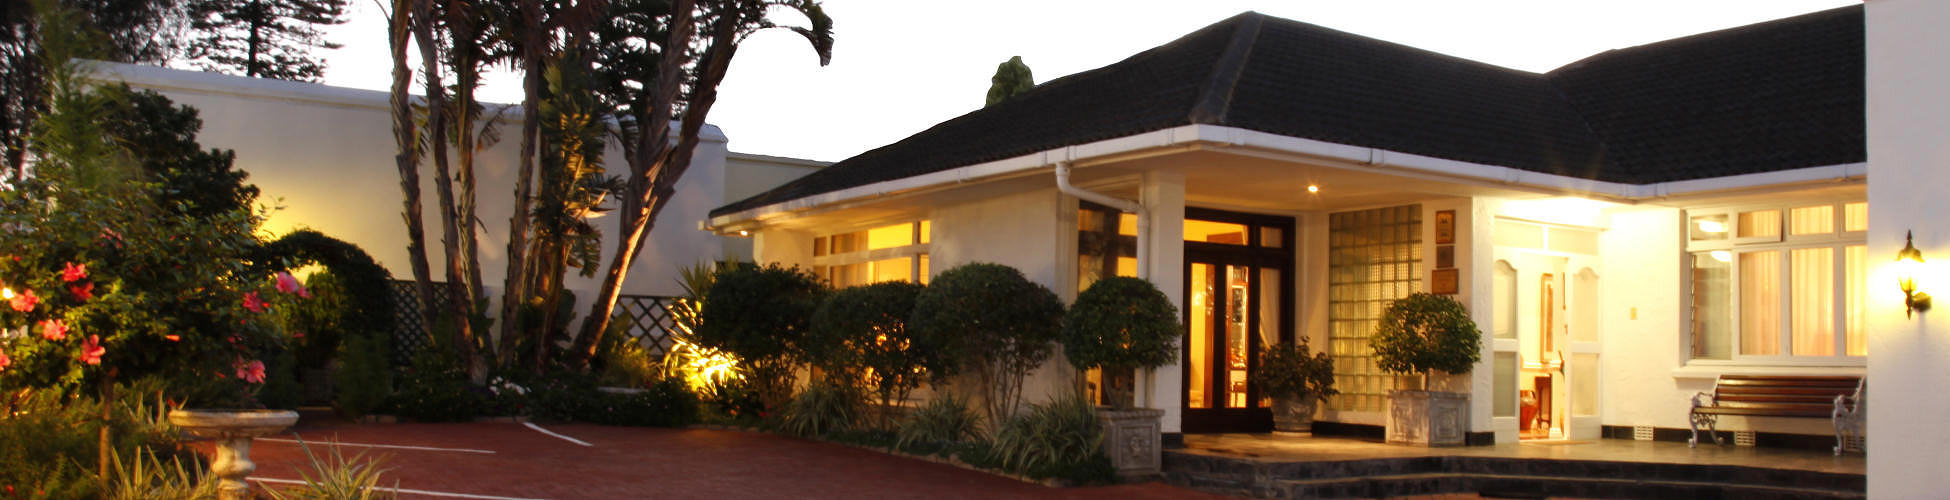 Carslogie Guest House, Luxury 4 star Accommodation in Port Elizabeth